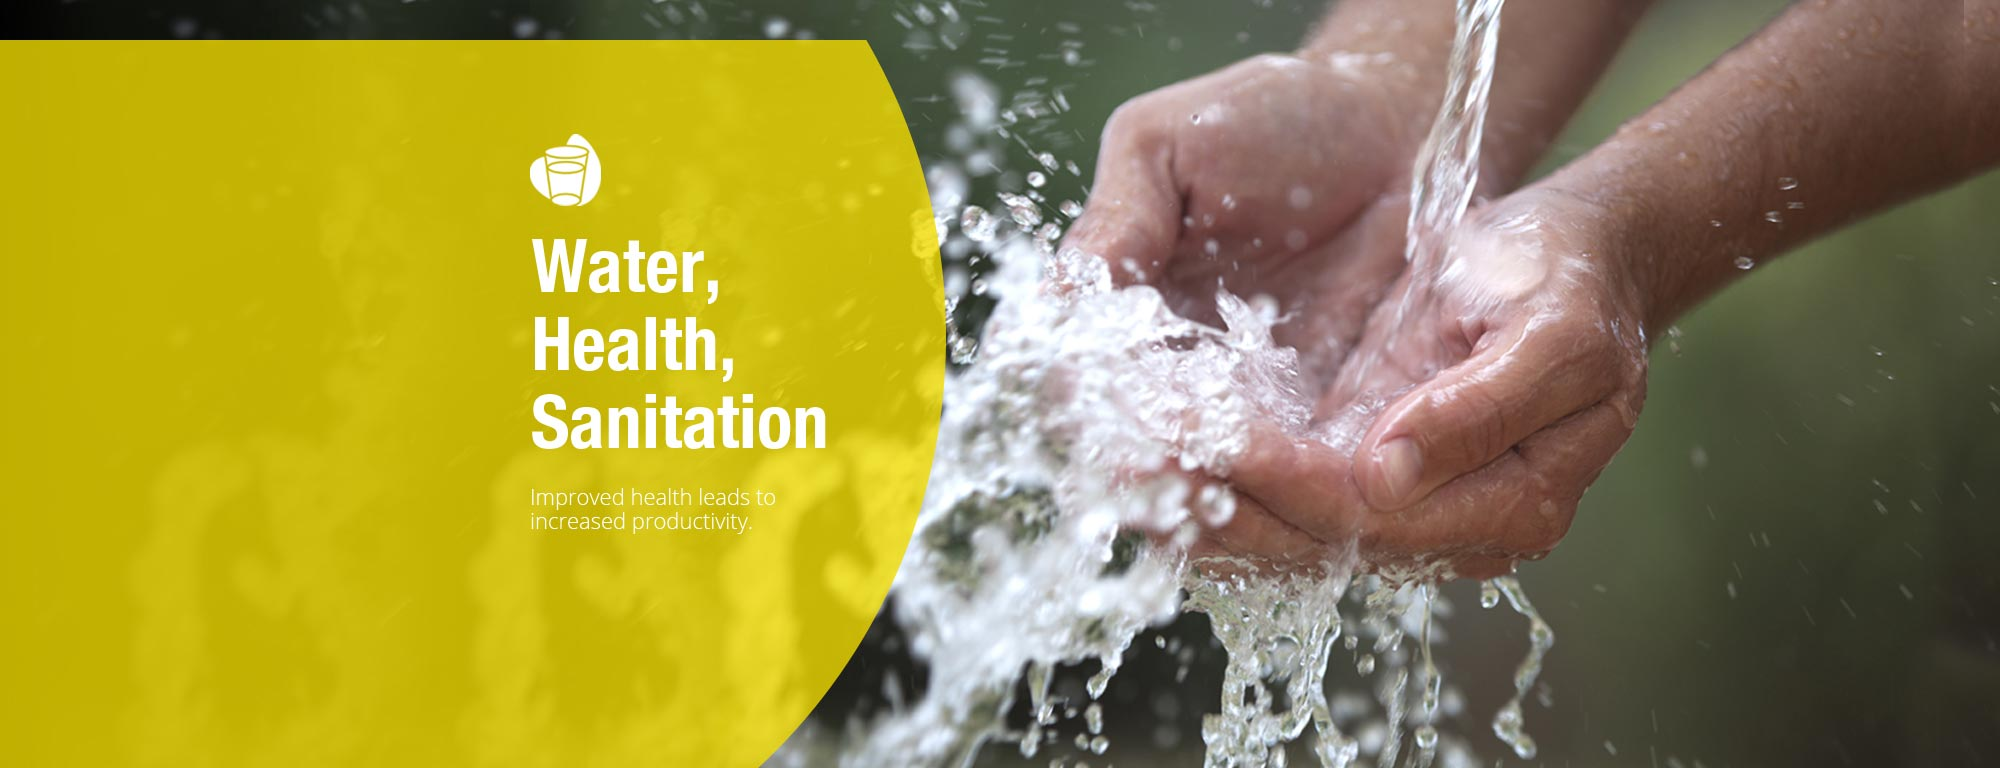 Water health sanitation